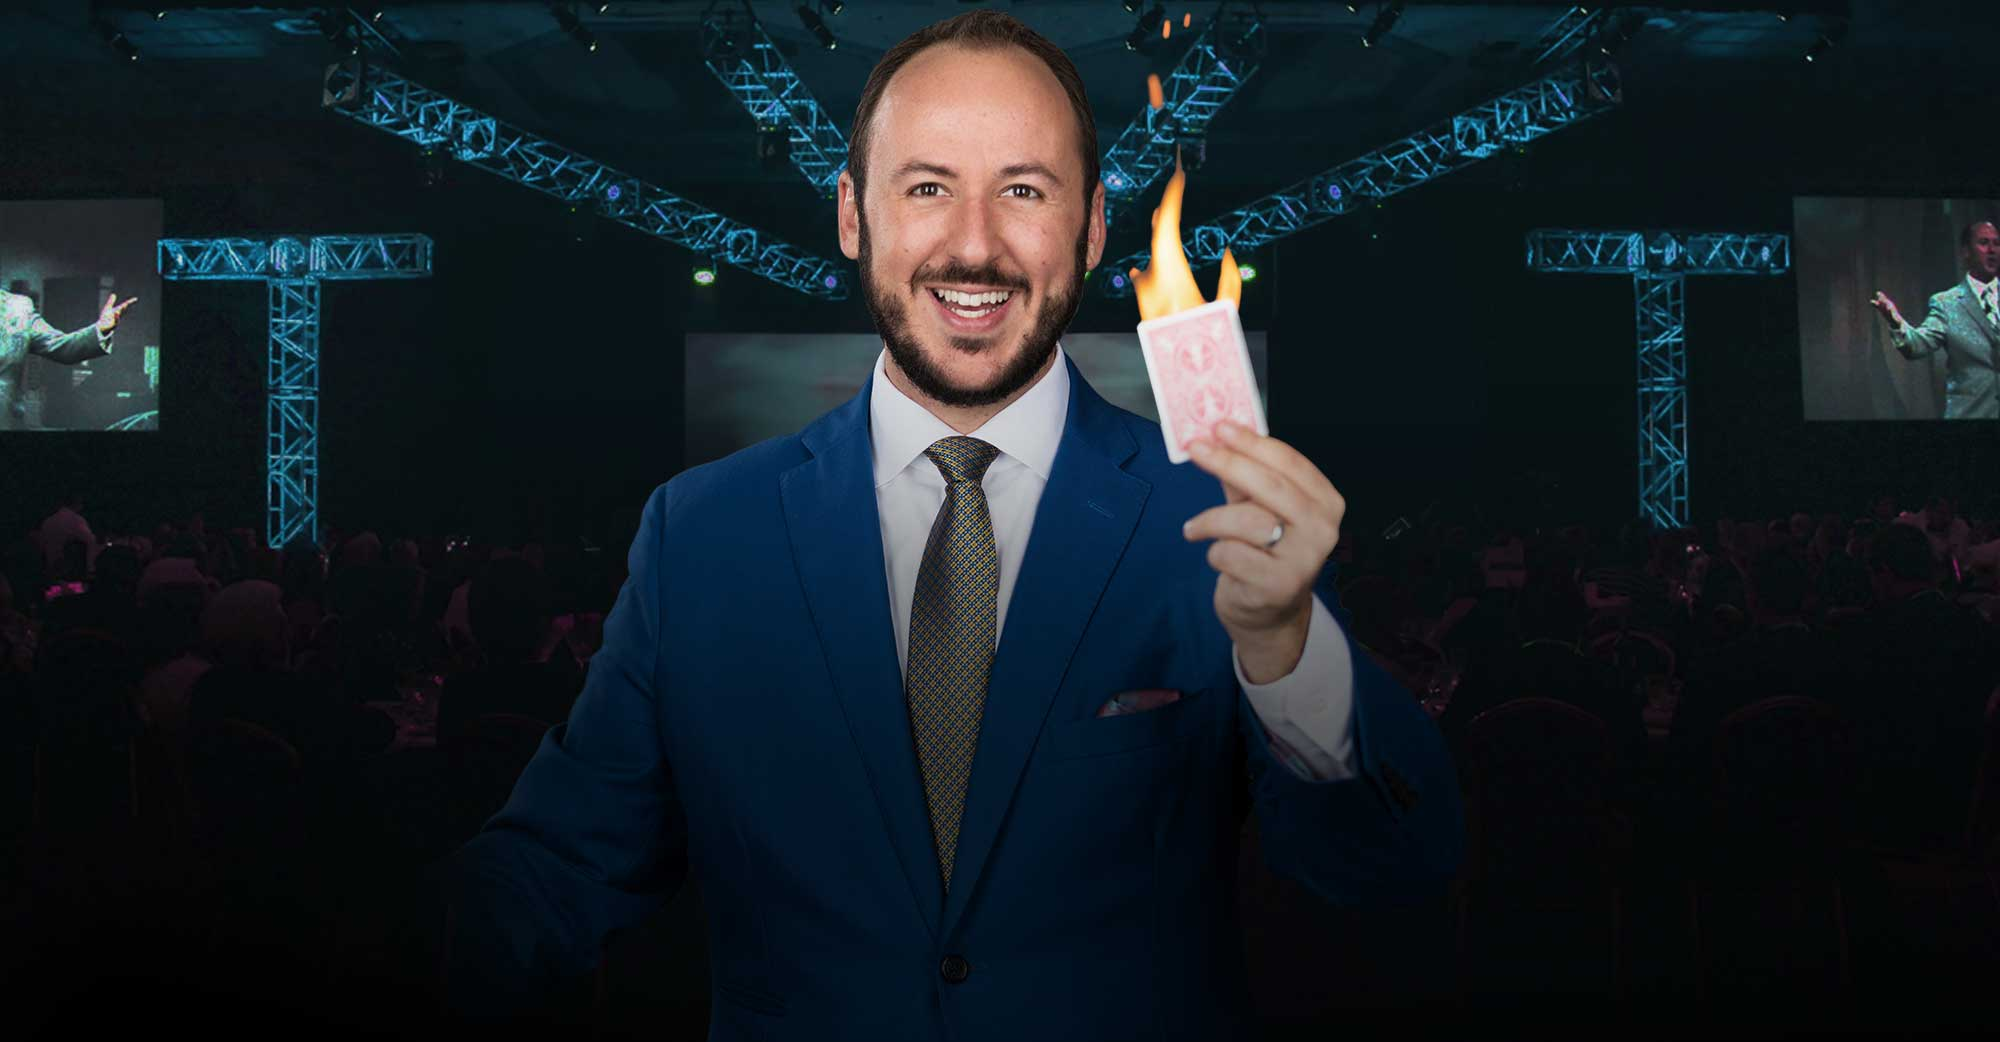 #3 Kostya transforms your culture. - As a motivational keynote speaker and magician, Kostya shares easy-to-apply secrets that make magicians the ultimate masters of perception, empowering you to communicate more effectively with customers, clients, and coworkers.